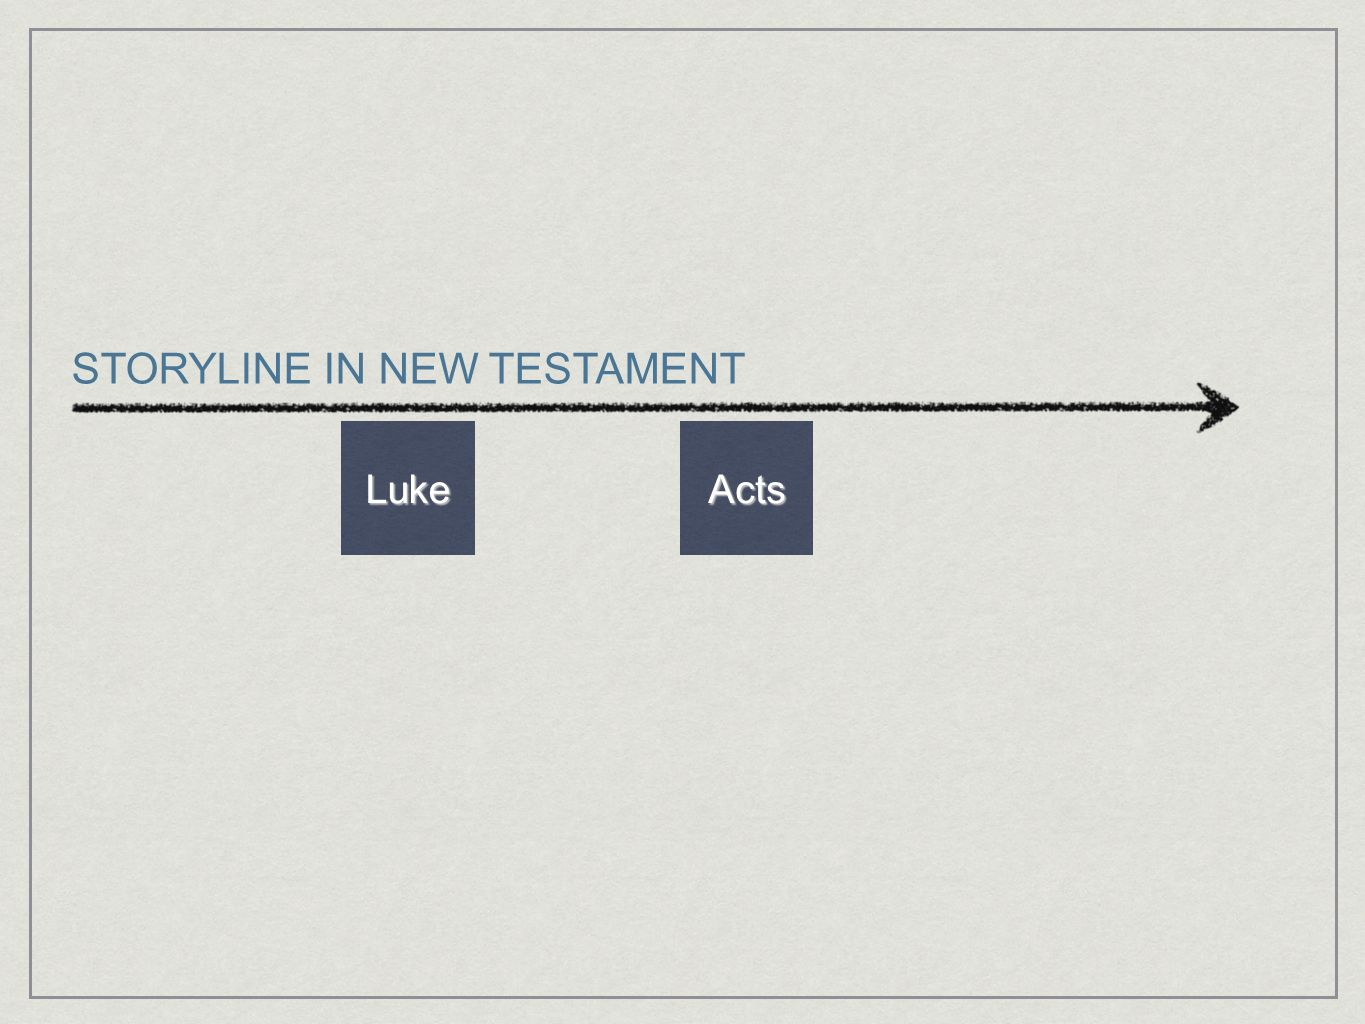 LukeActs STORYLINE IN NEW TESTAMENT